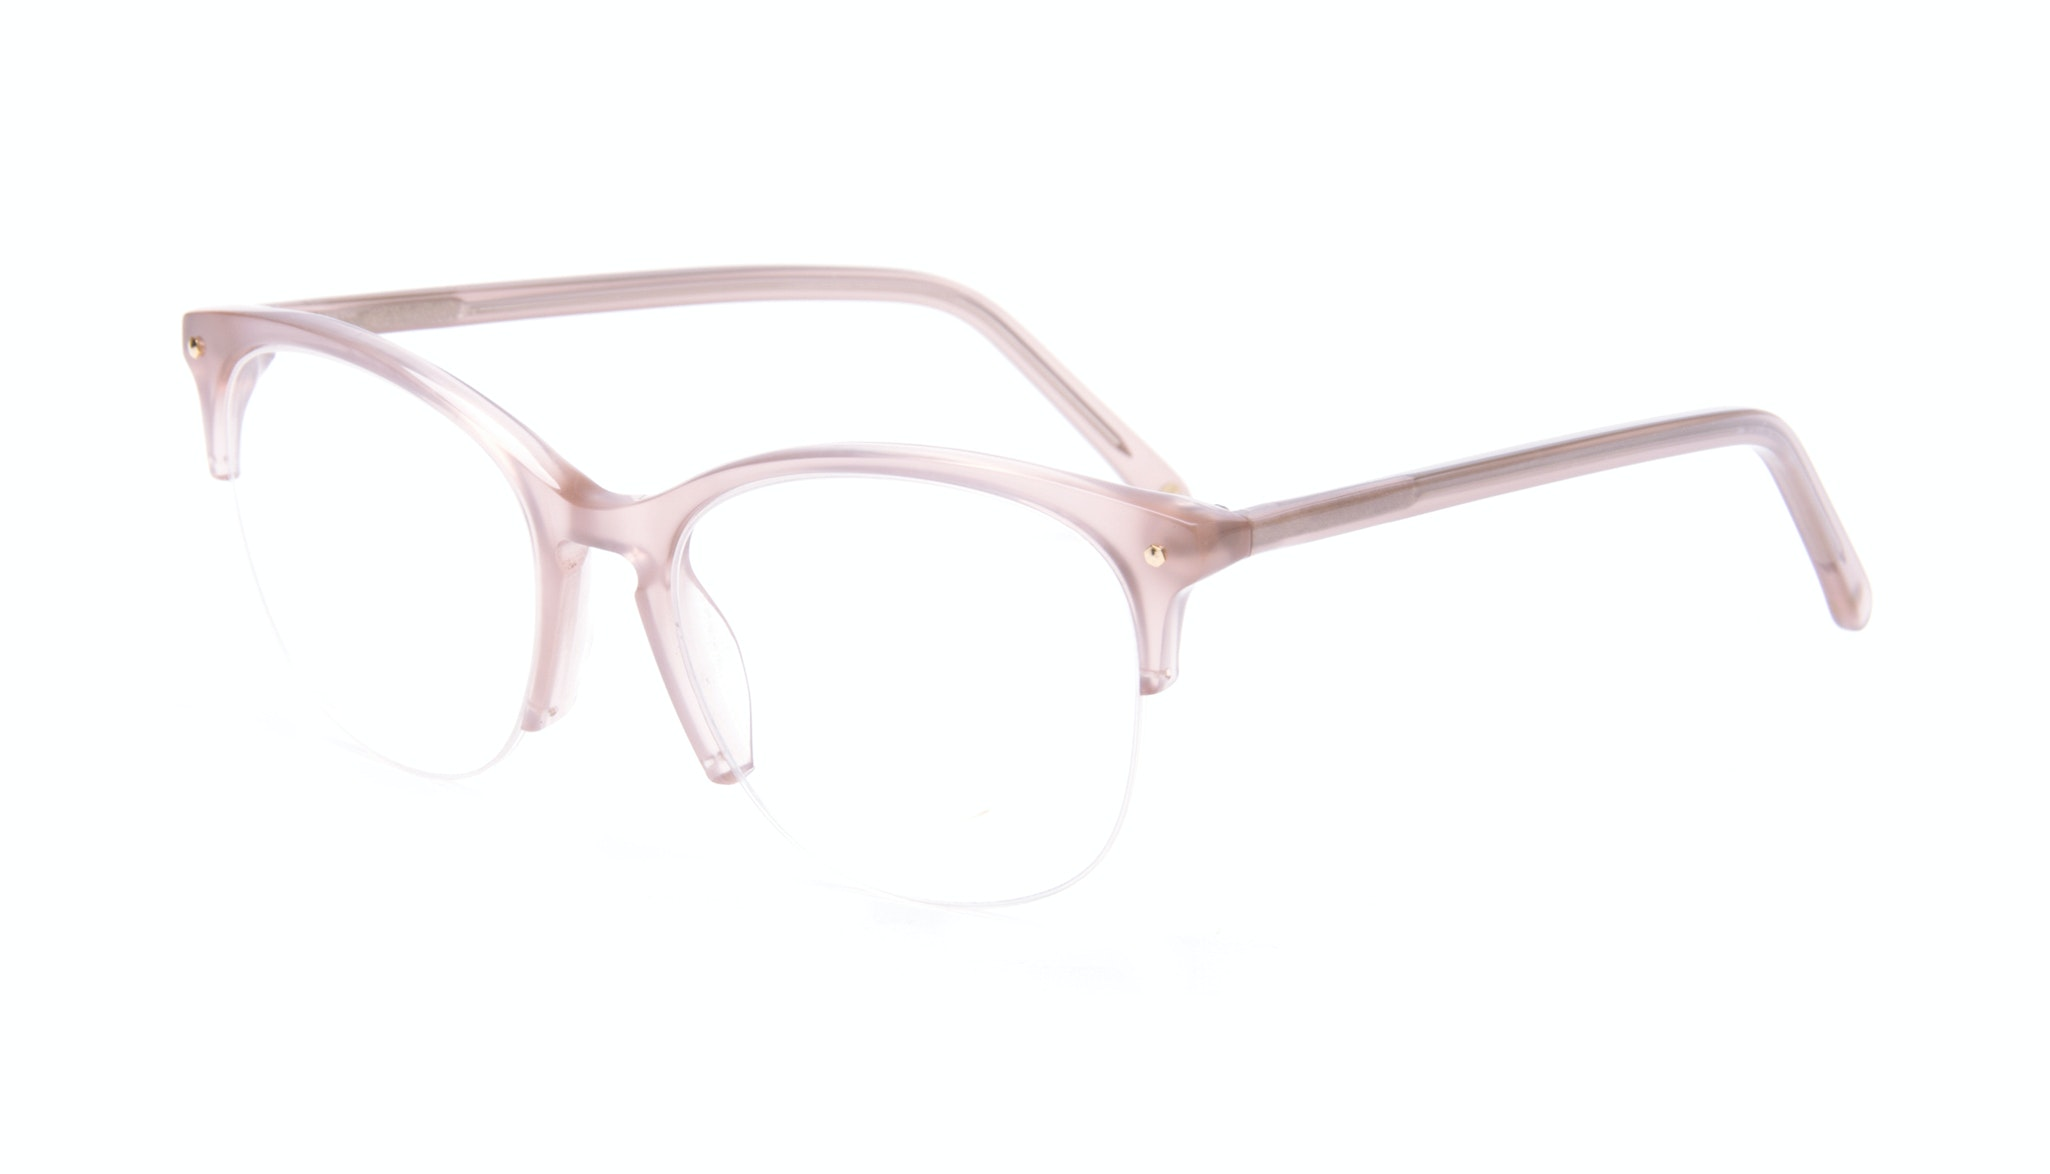 Affordable Fashion Glasses Rectangle Round Eyeglasses Women Nadine Light Pink Mouse Tilt